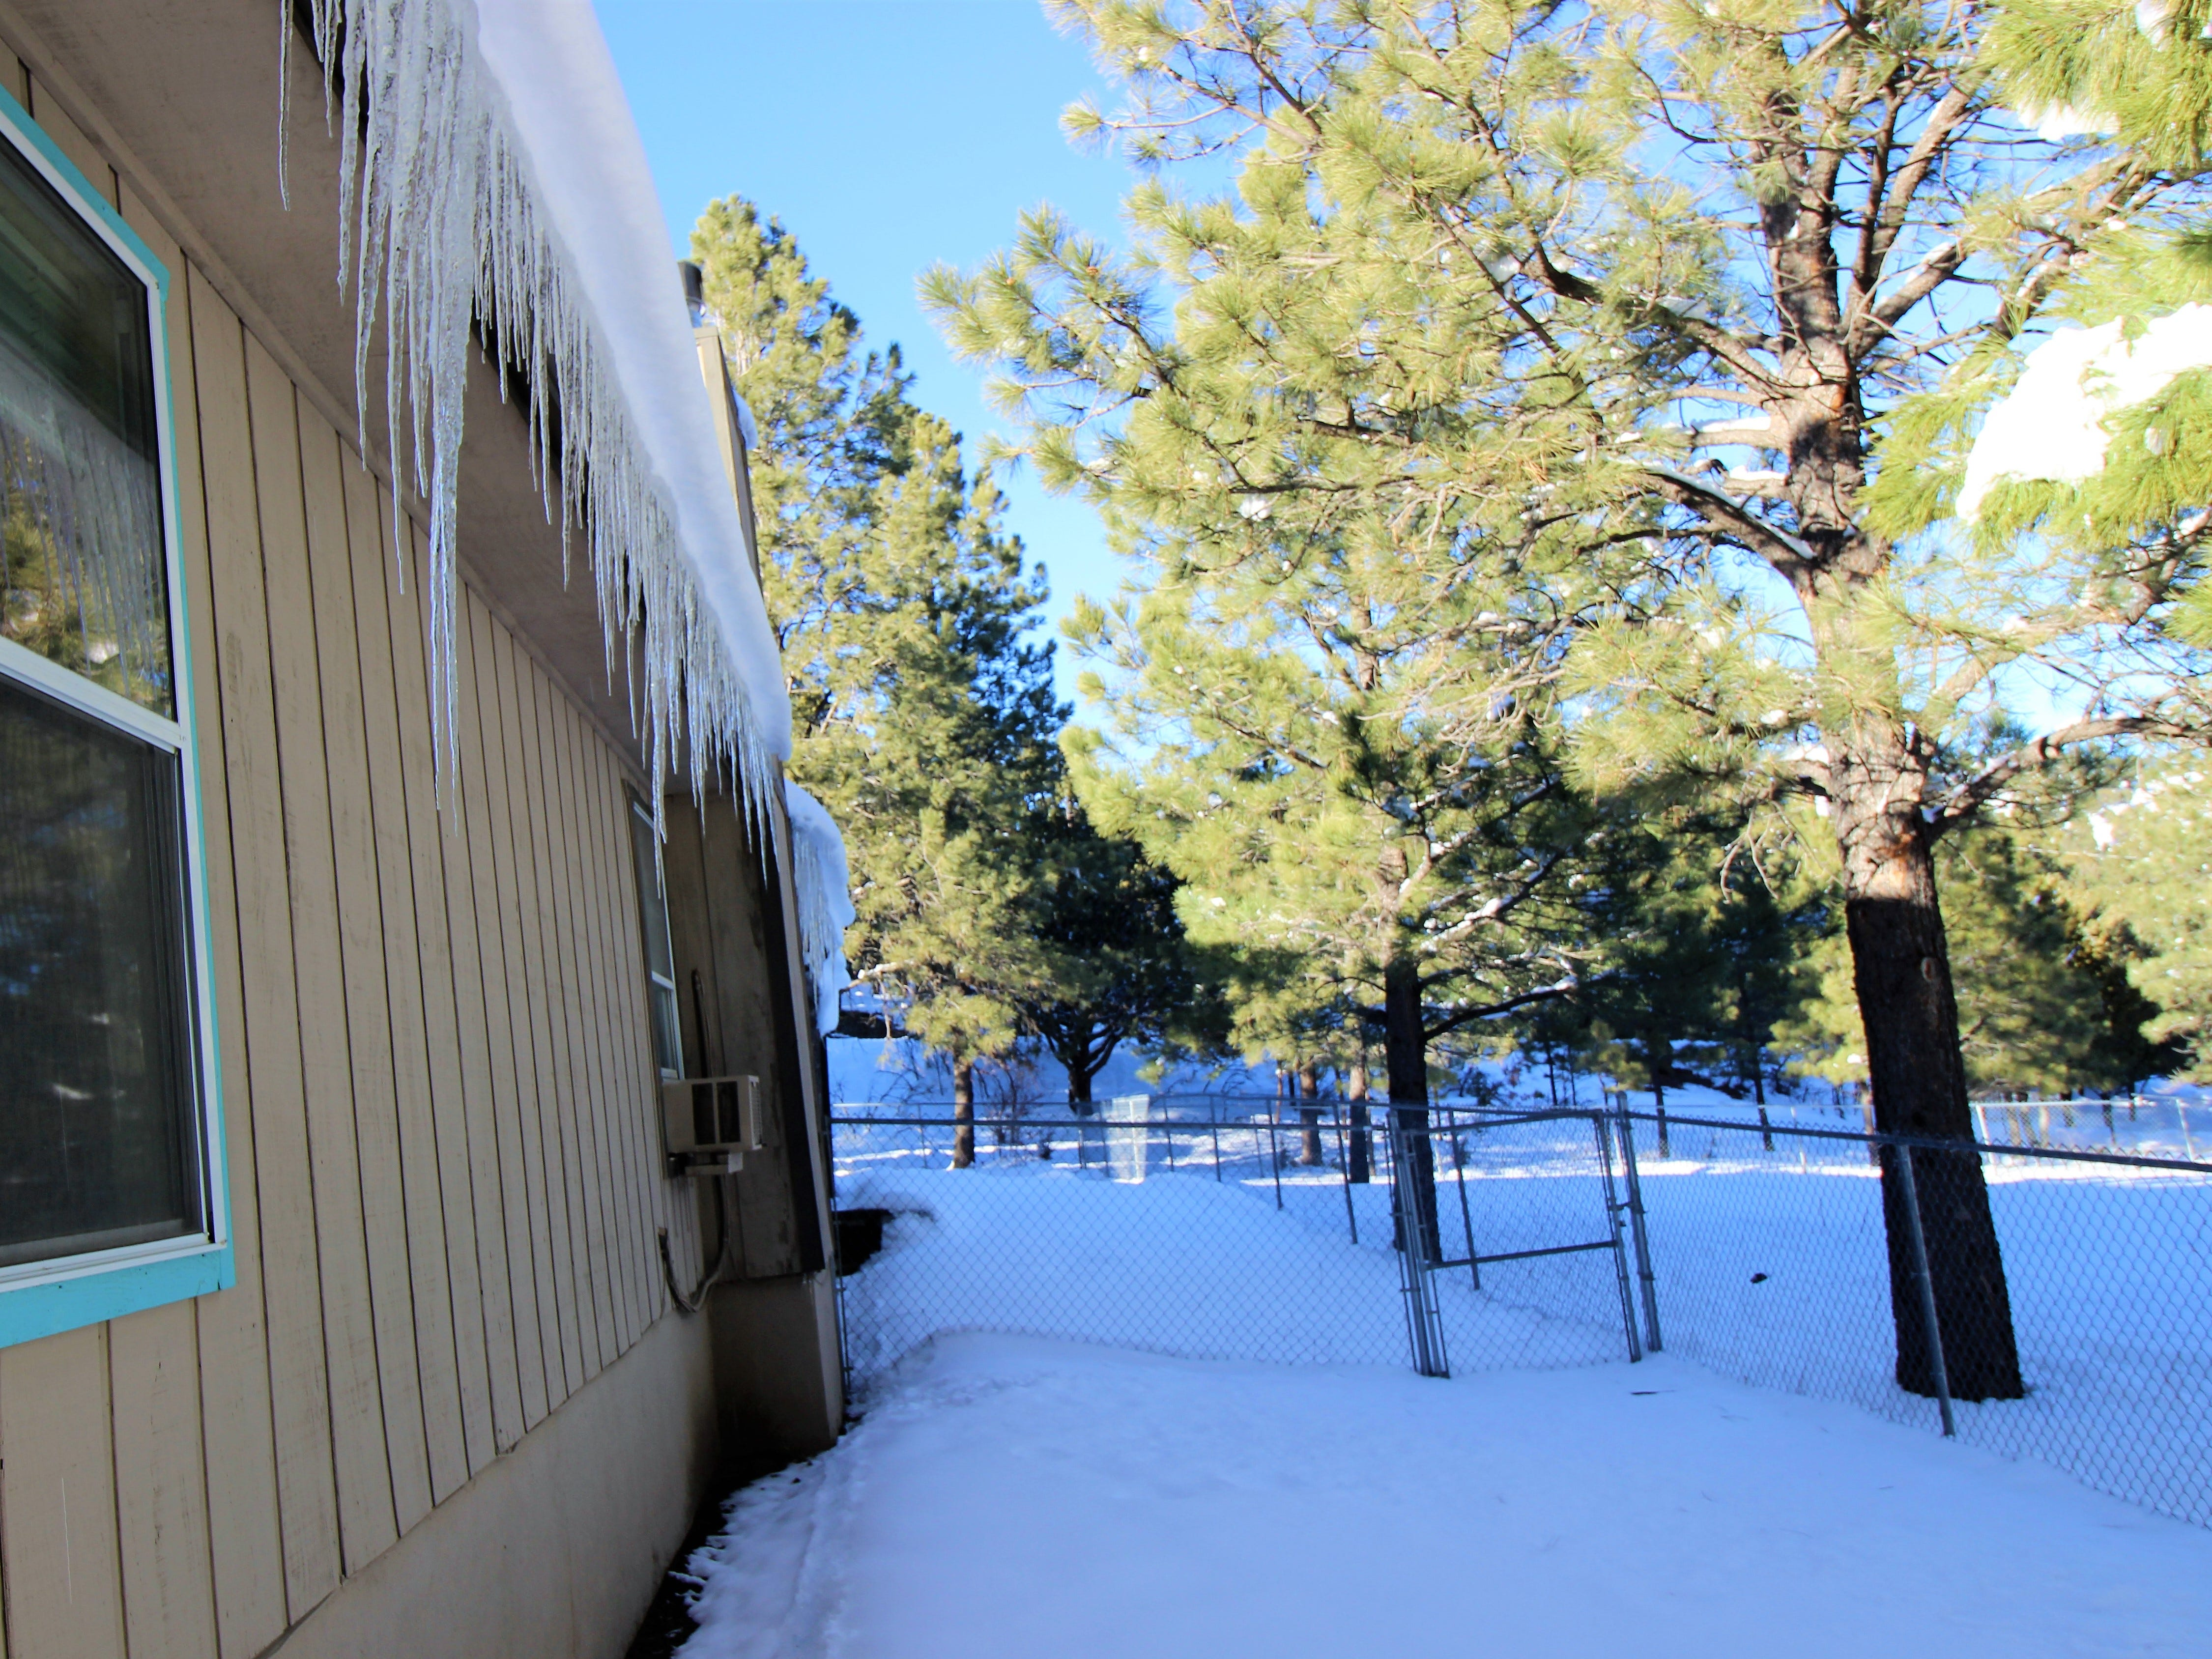 The snow is melting and icicles are forming all over Ruidoso.